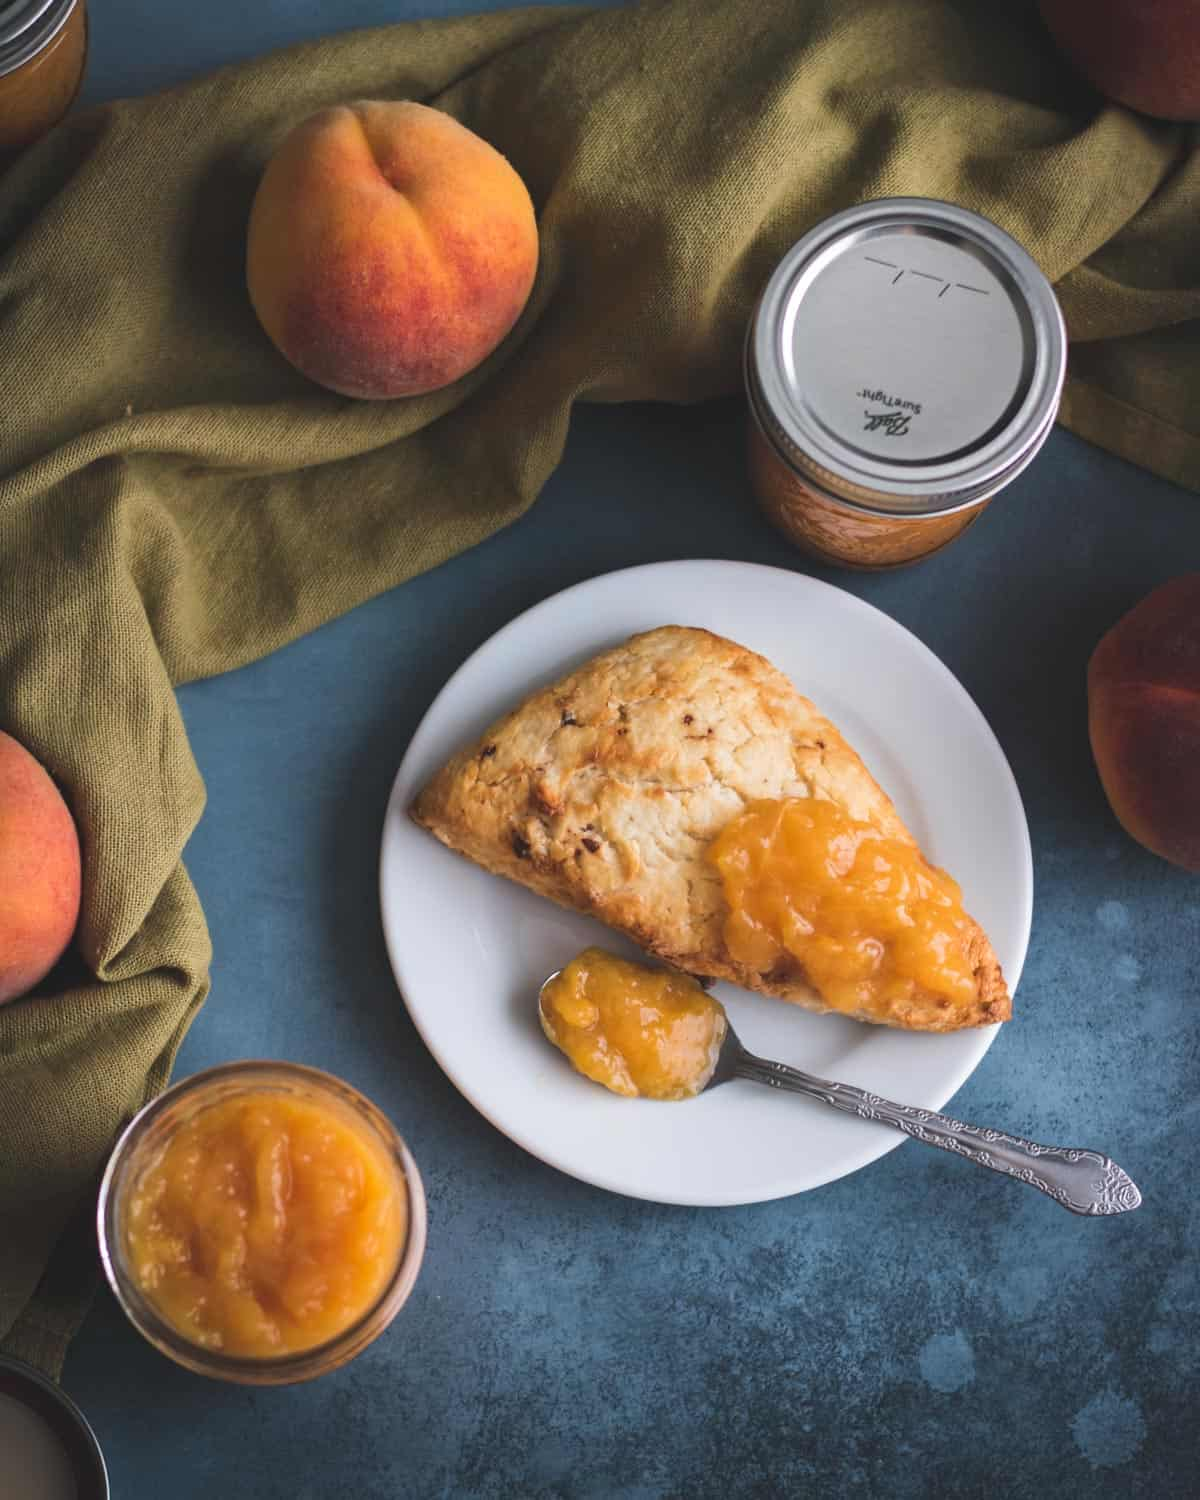 no sugar peach jam on a scone